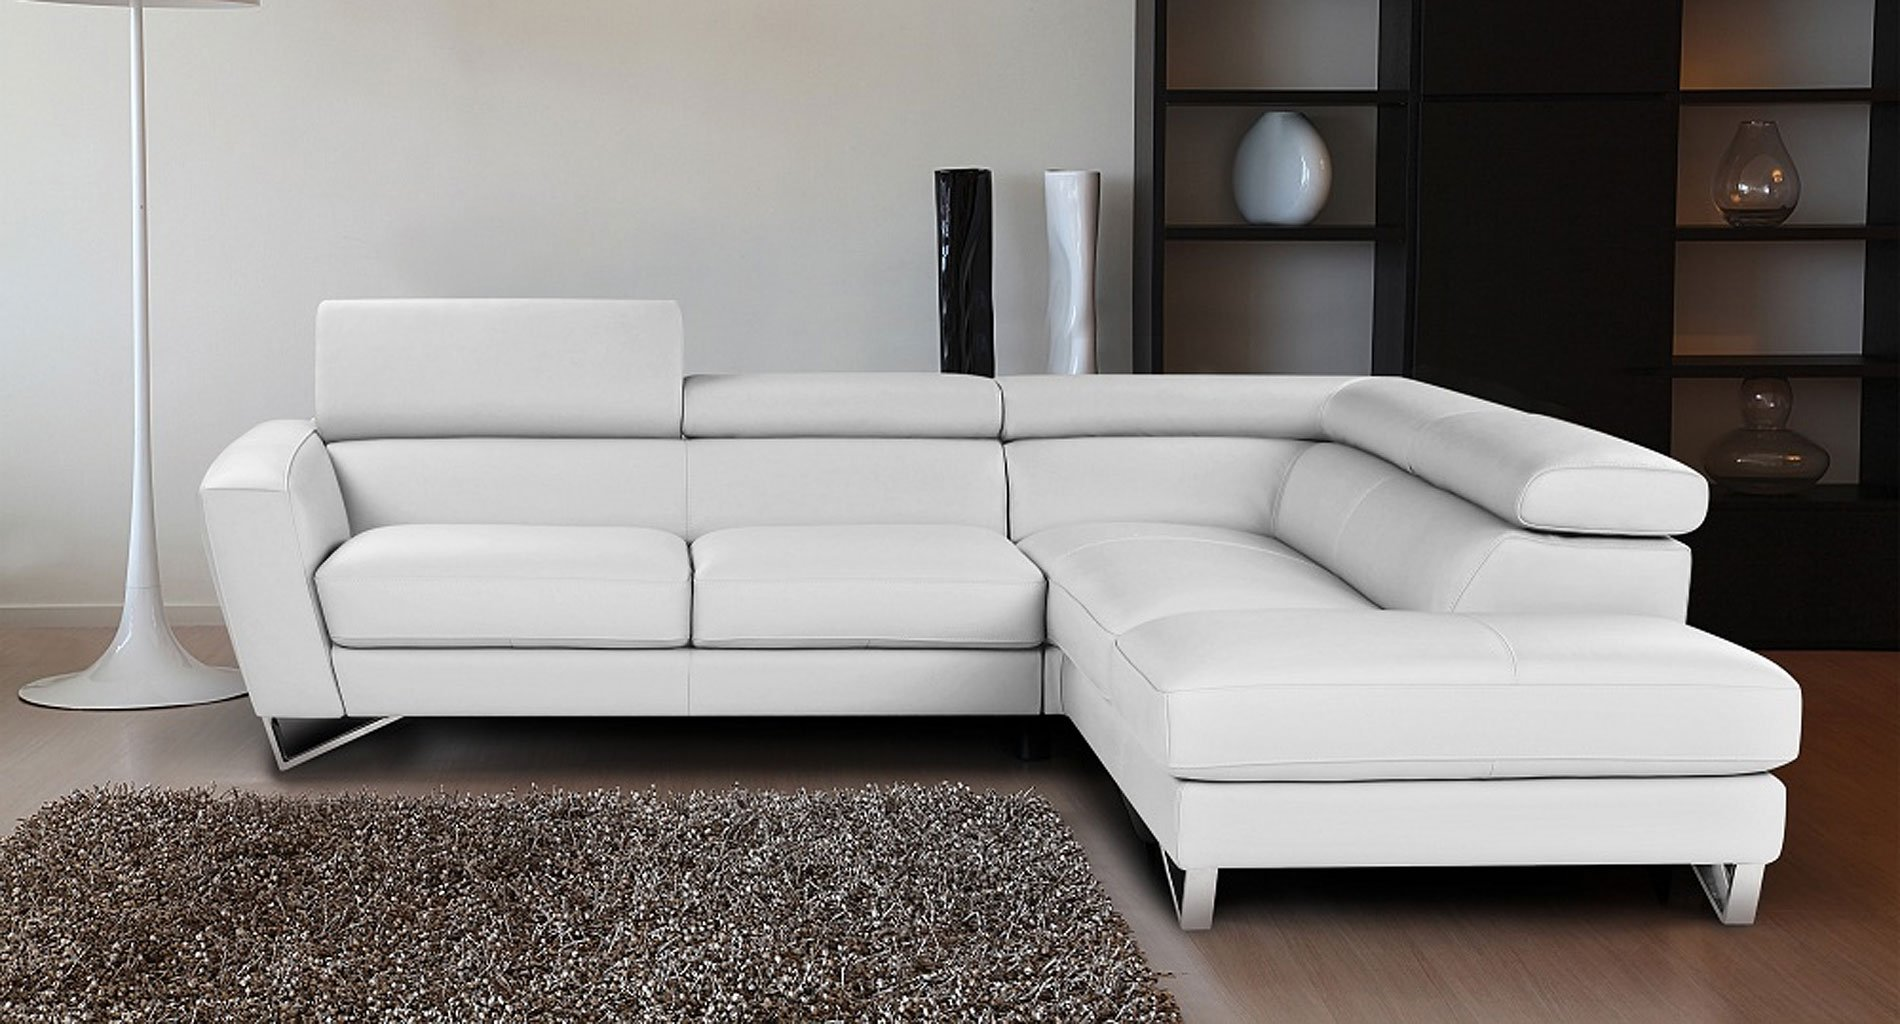 Sparta Leather Right Chaise Sectional (White) JM Furniture ... on Sparta Outdoor Living id=18218